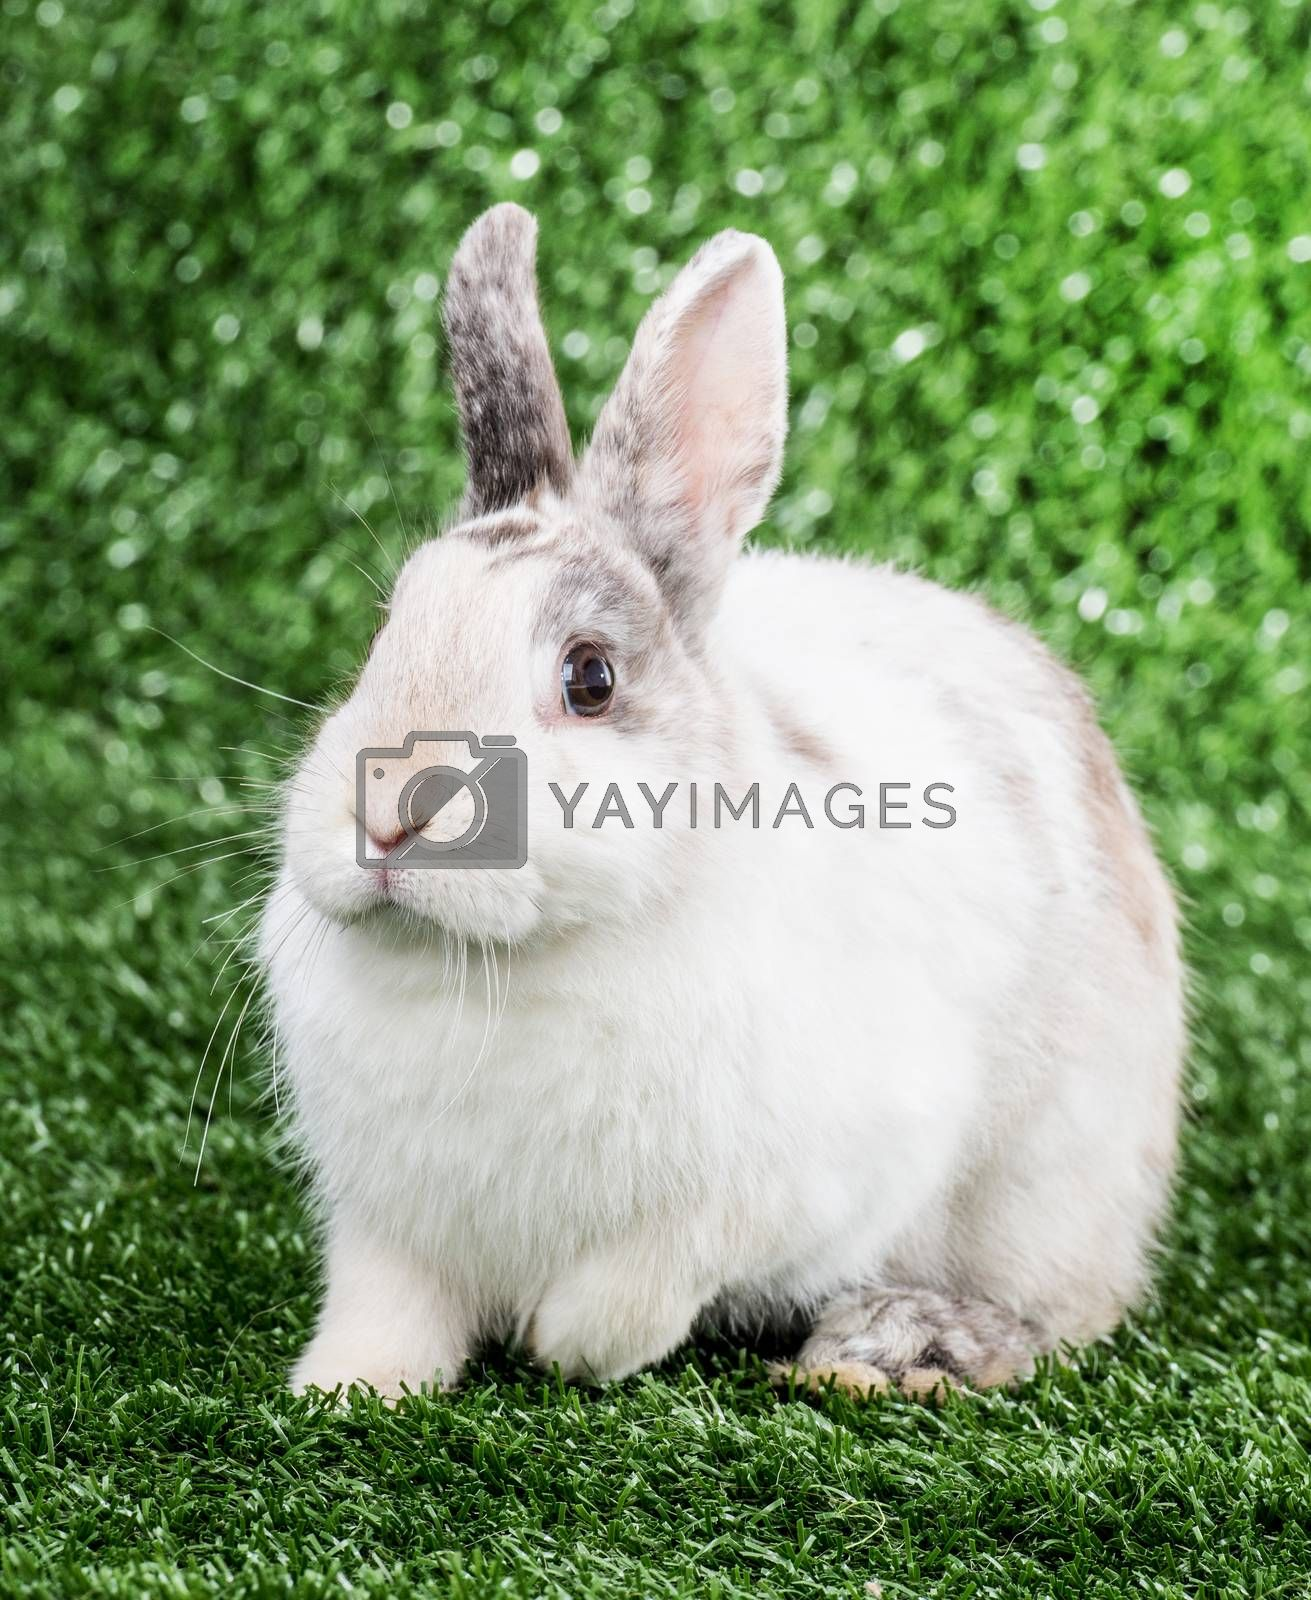 Royalty free image of rabbit on the grass by GekaSkr